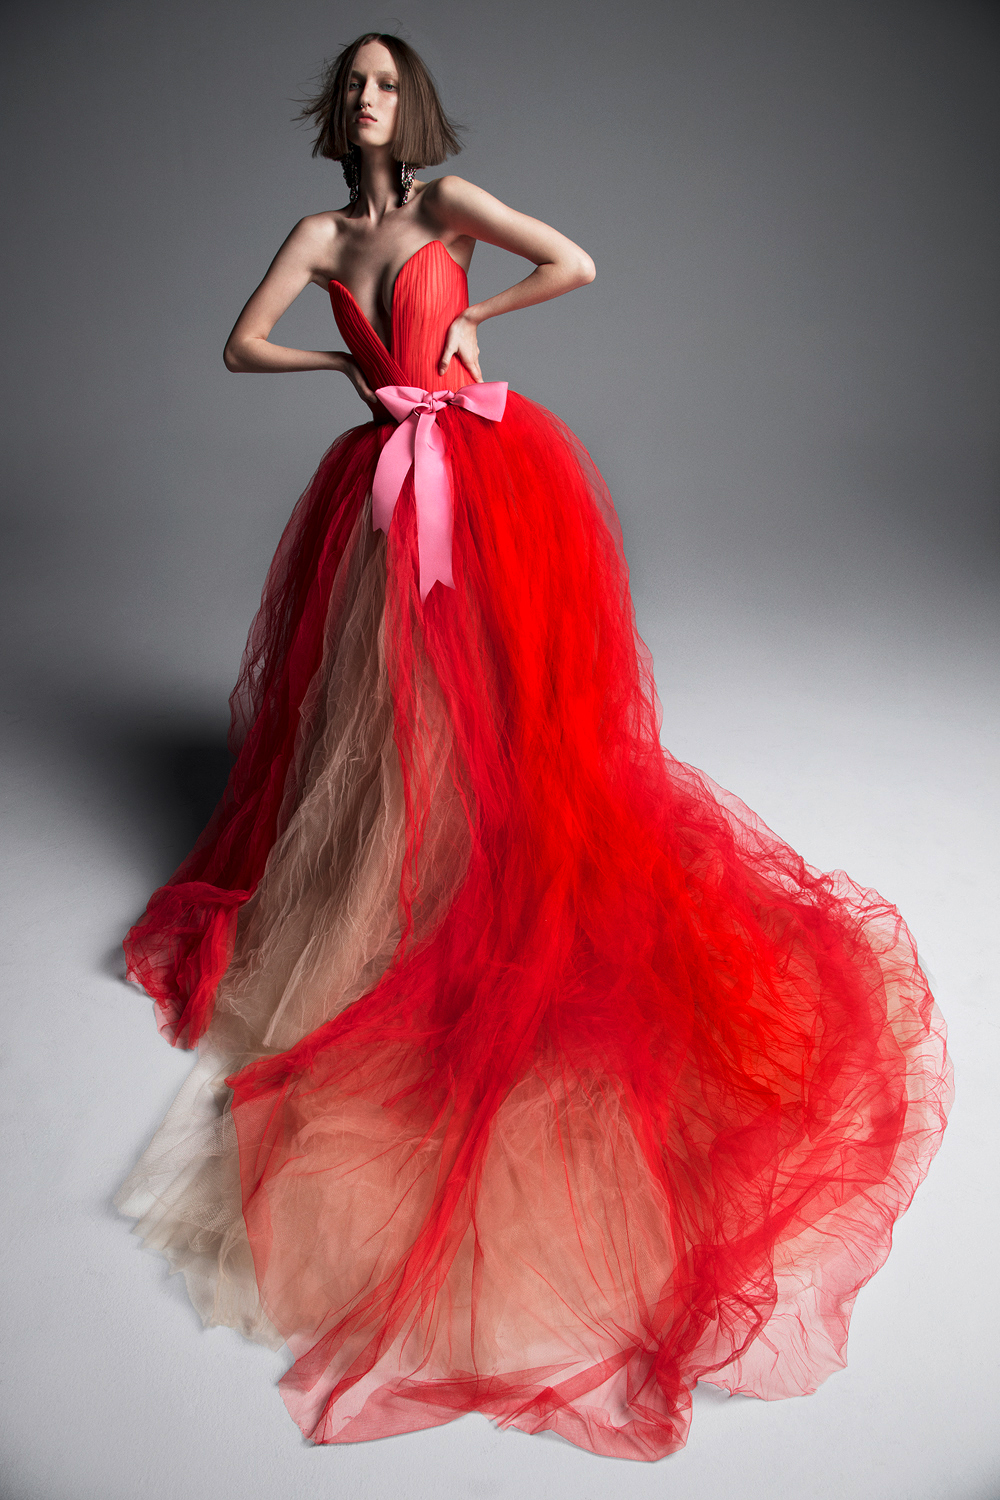 vera wang wedding dress spring 2019 red deep-v ball gown